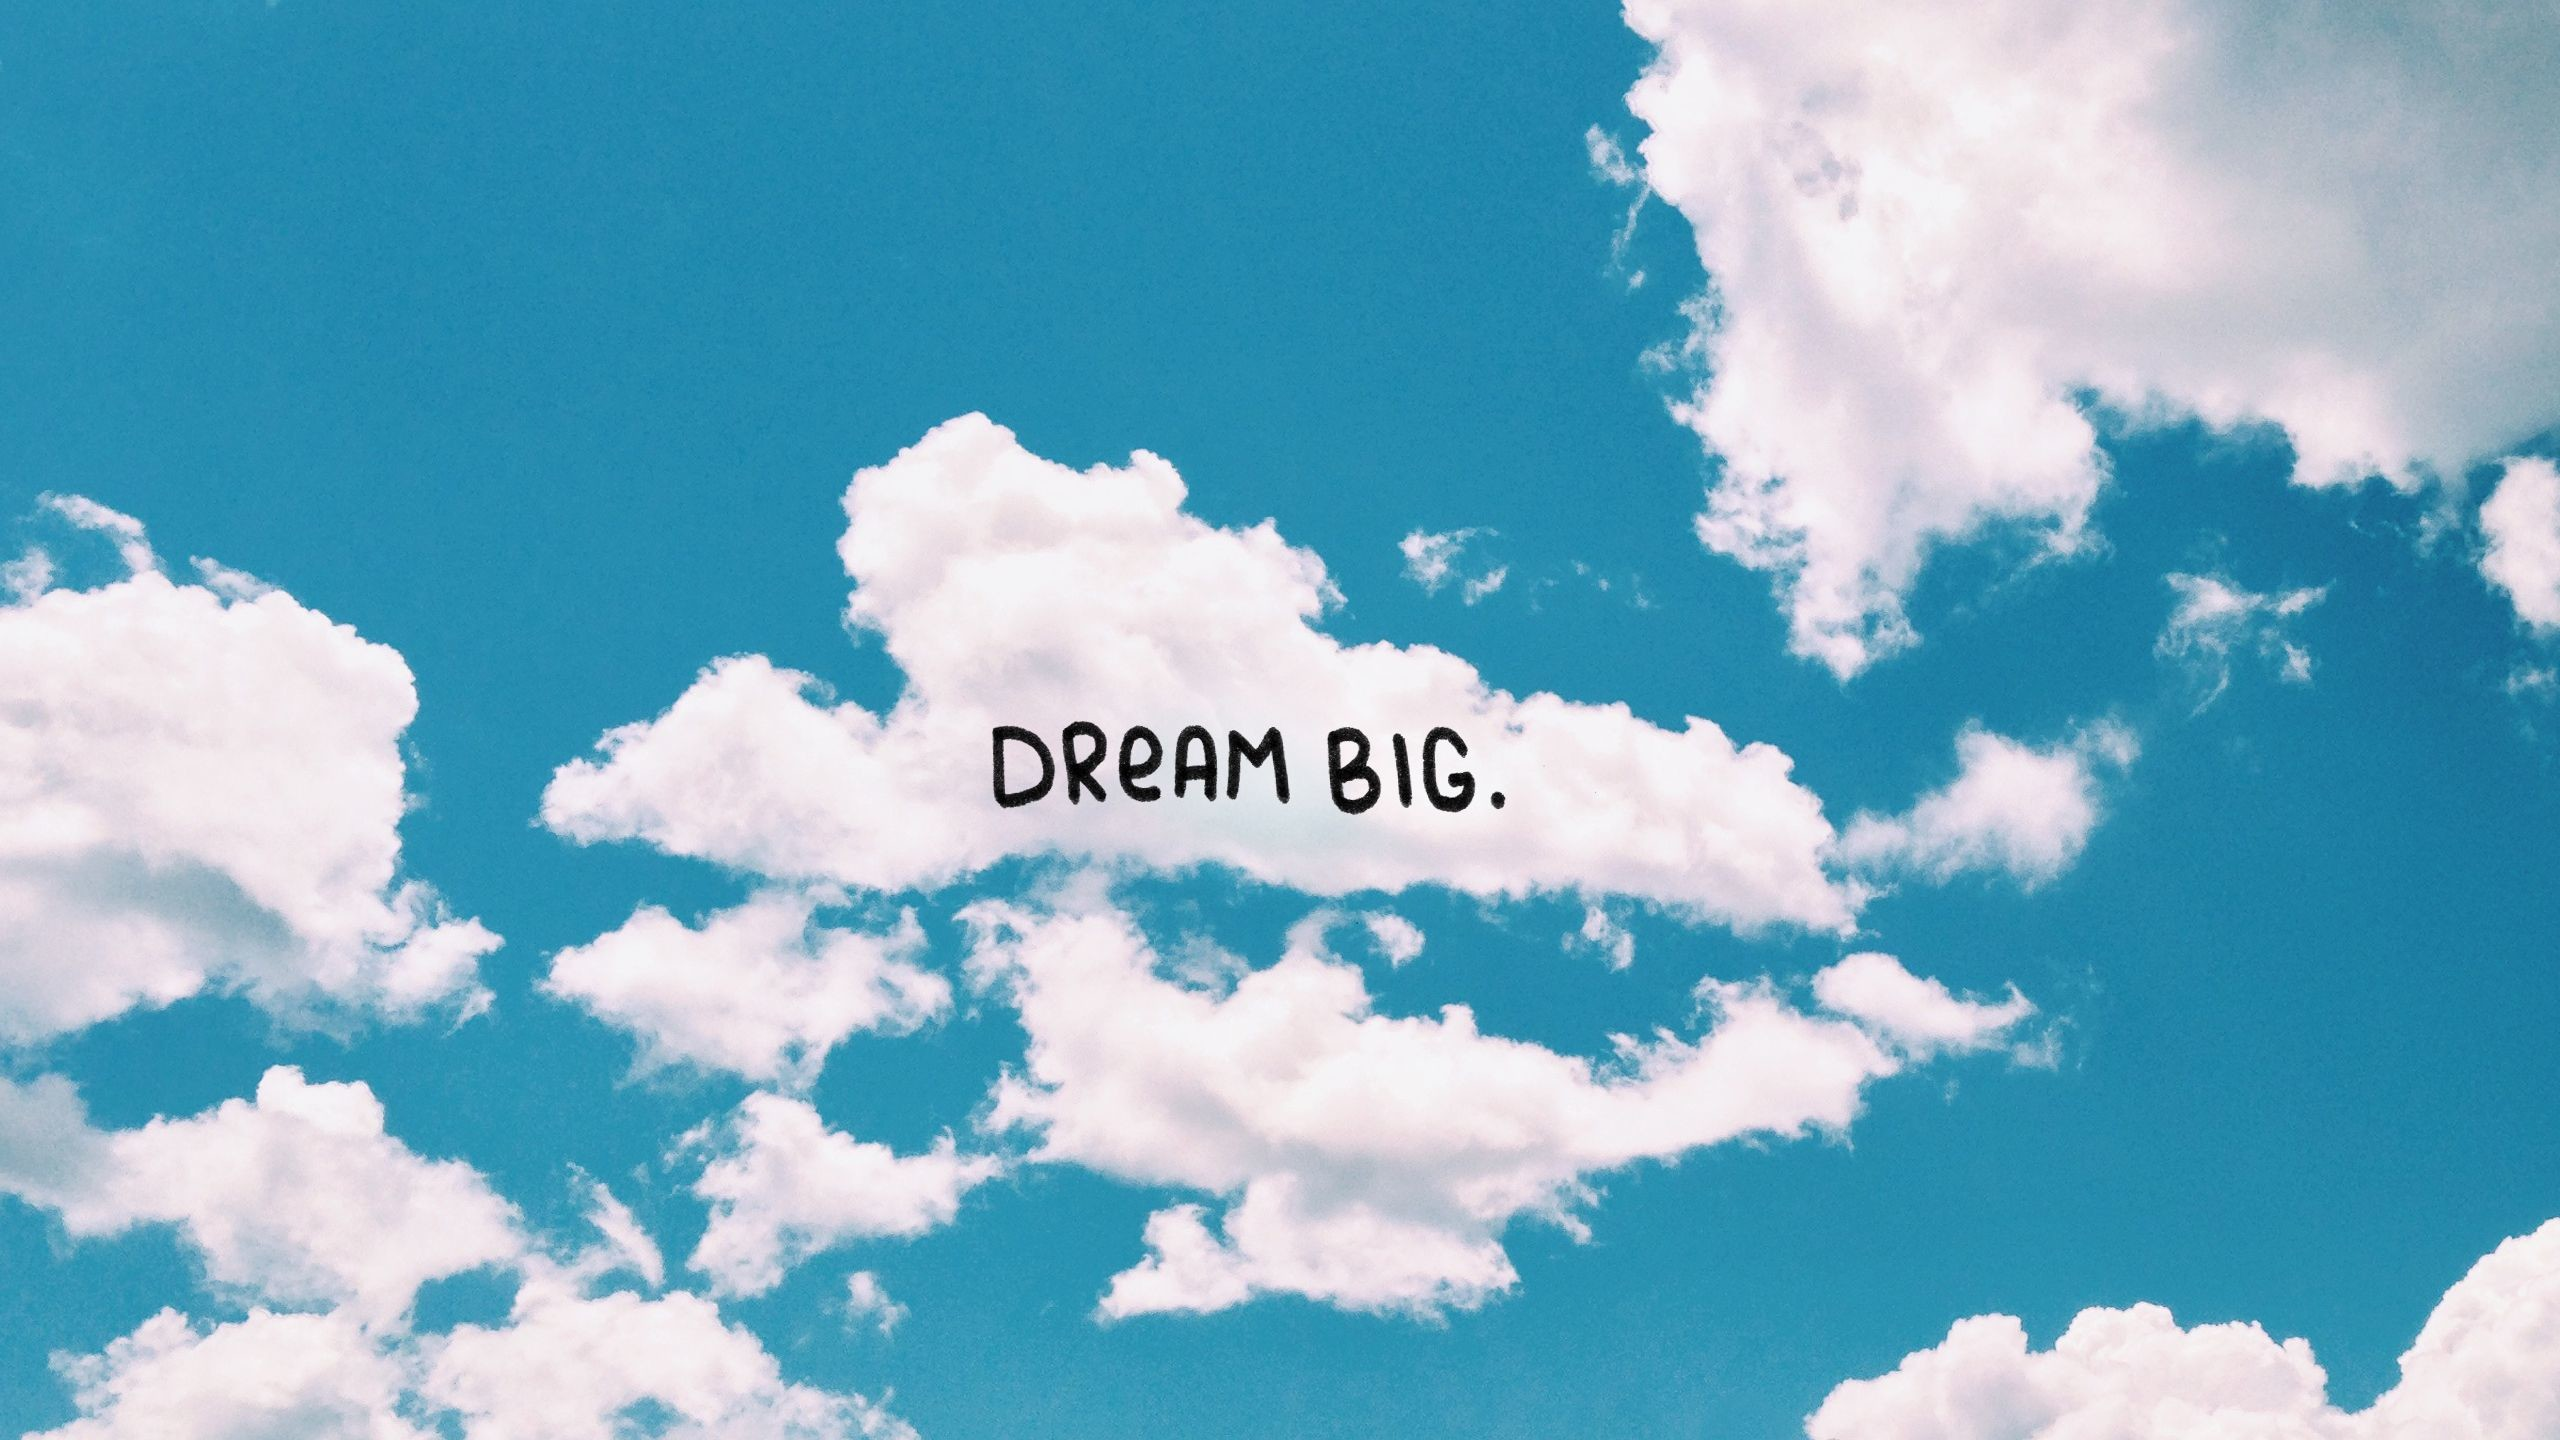 2560x1440 Dream big clouds blue sky desktop wallpaper background